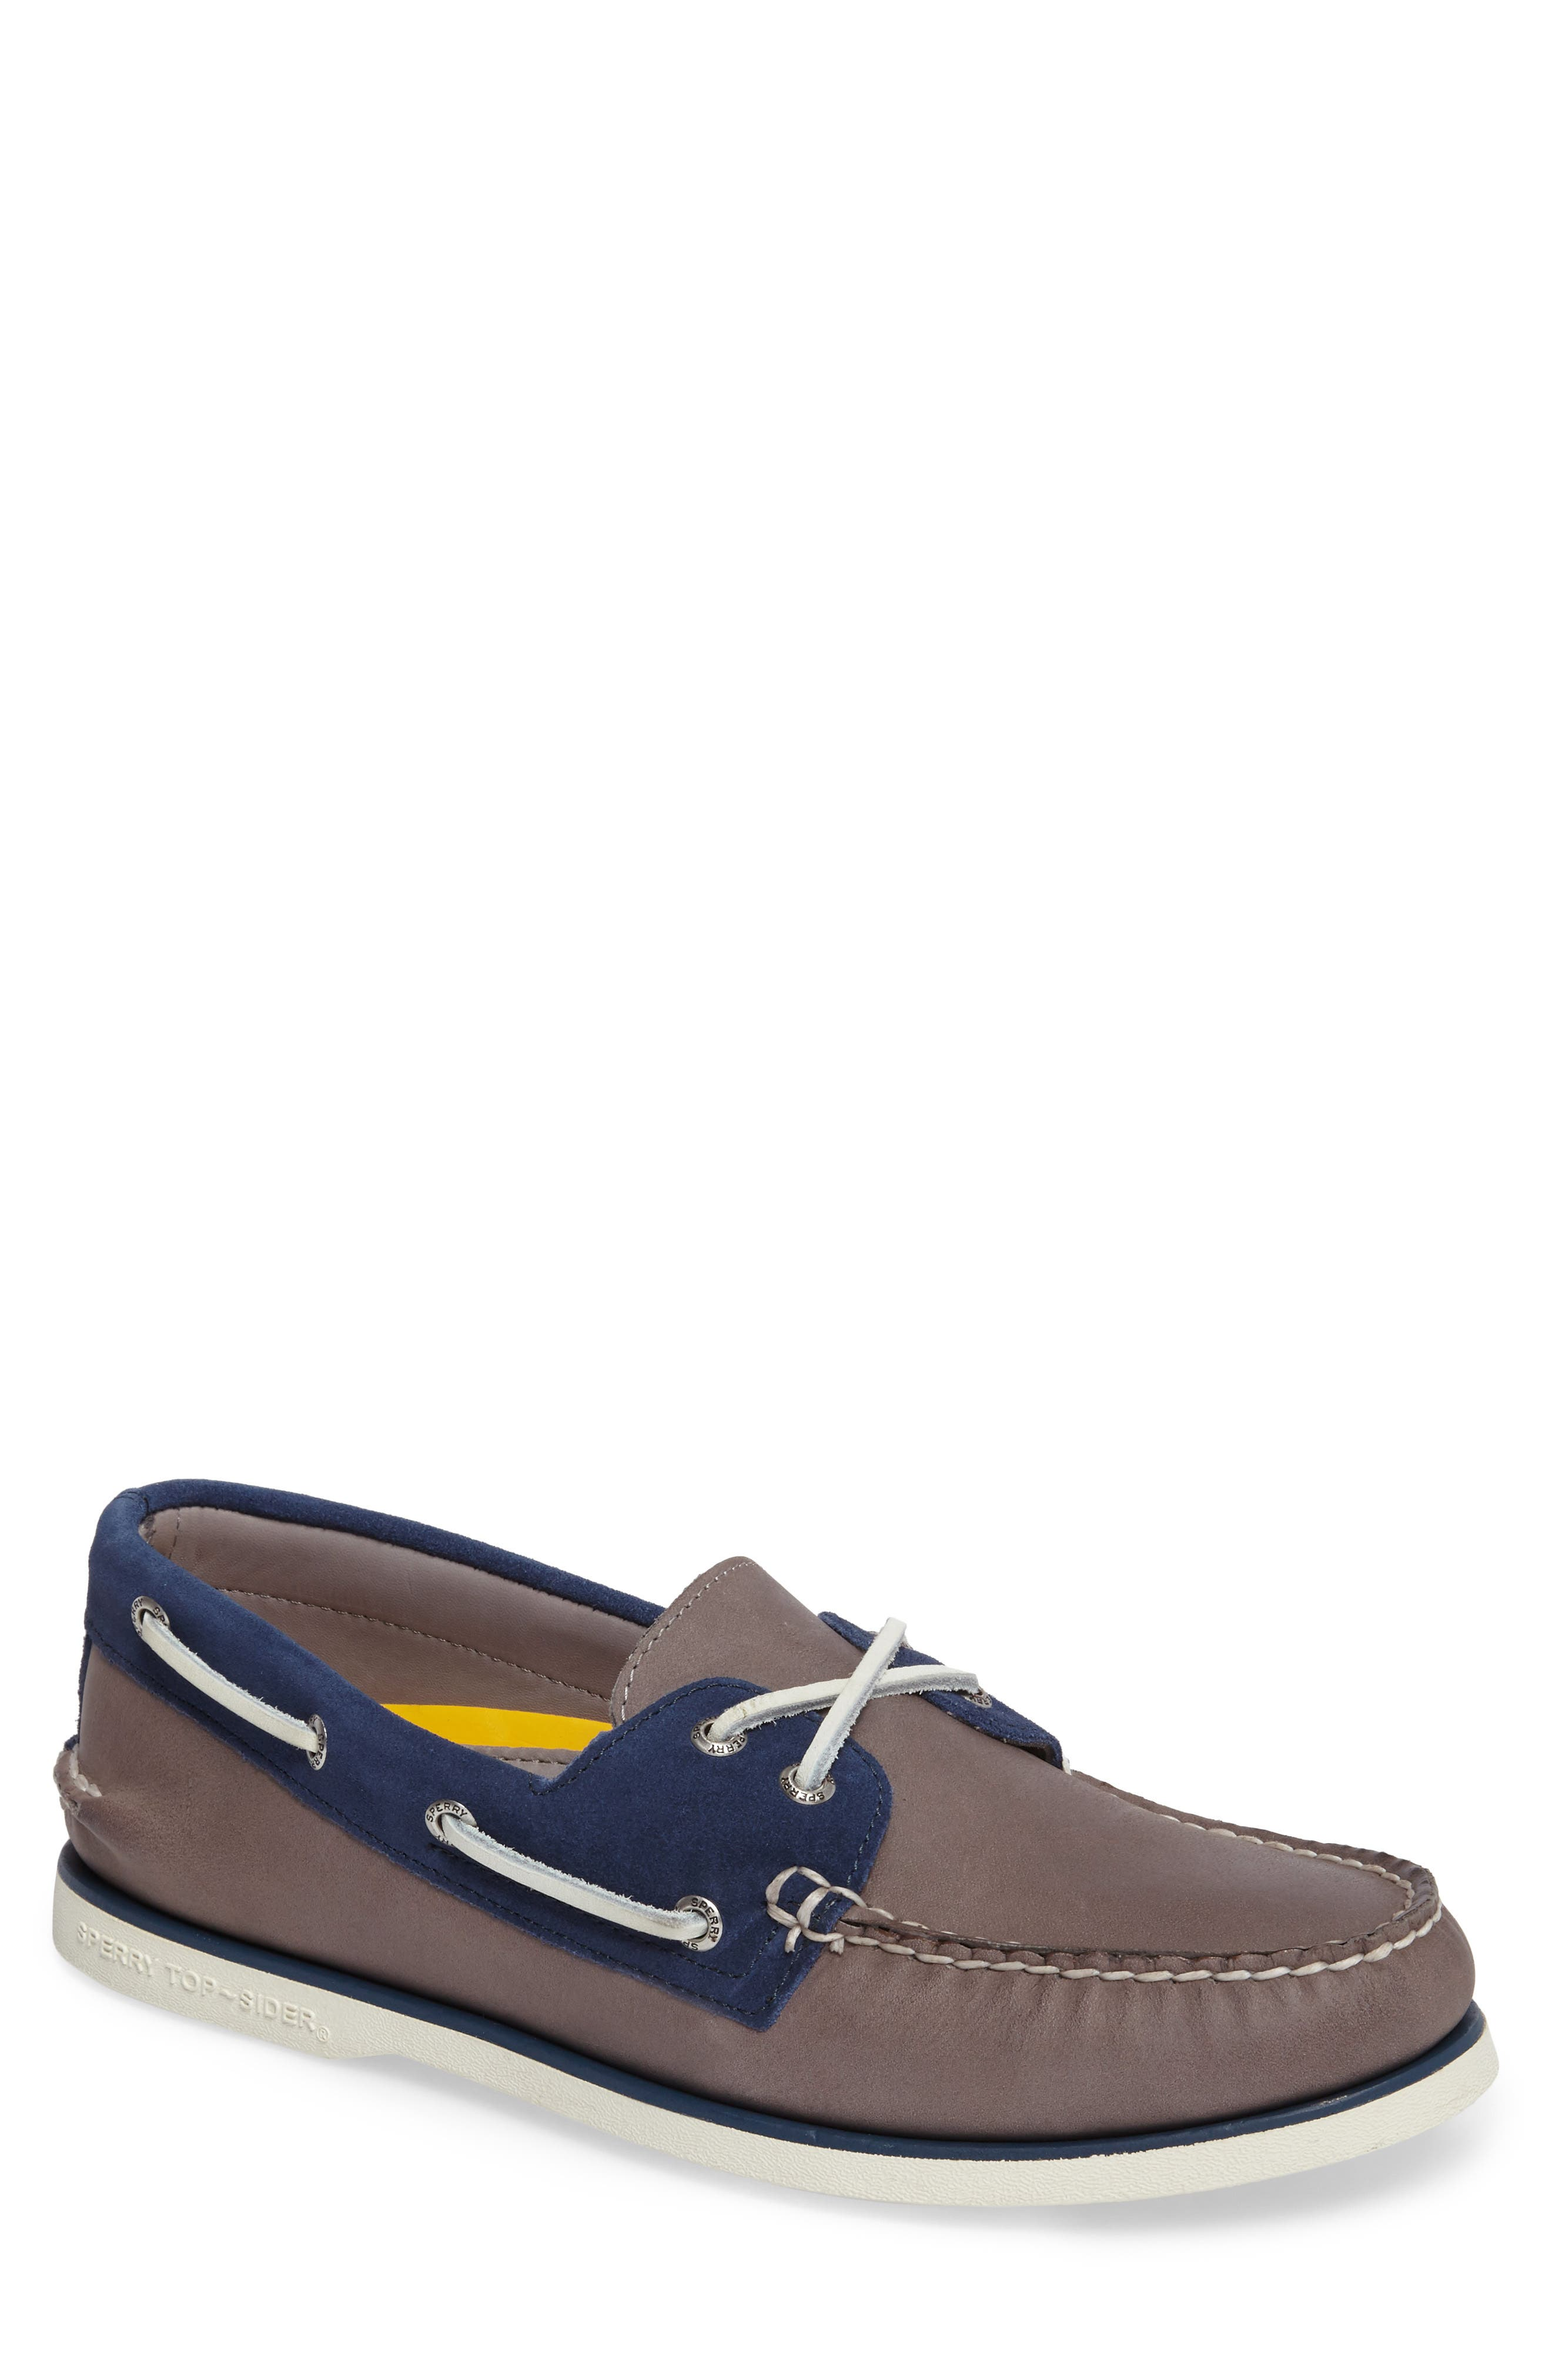 Alternate Image 1 Selected - Sperry Gold Cup Authentic Original Boat Shoe (Men)